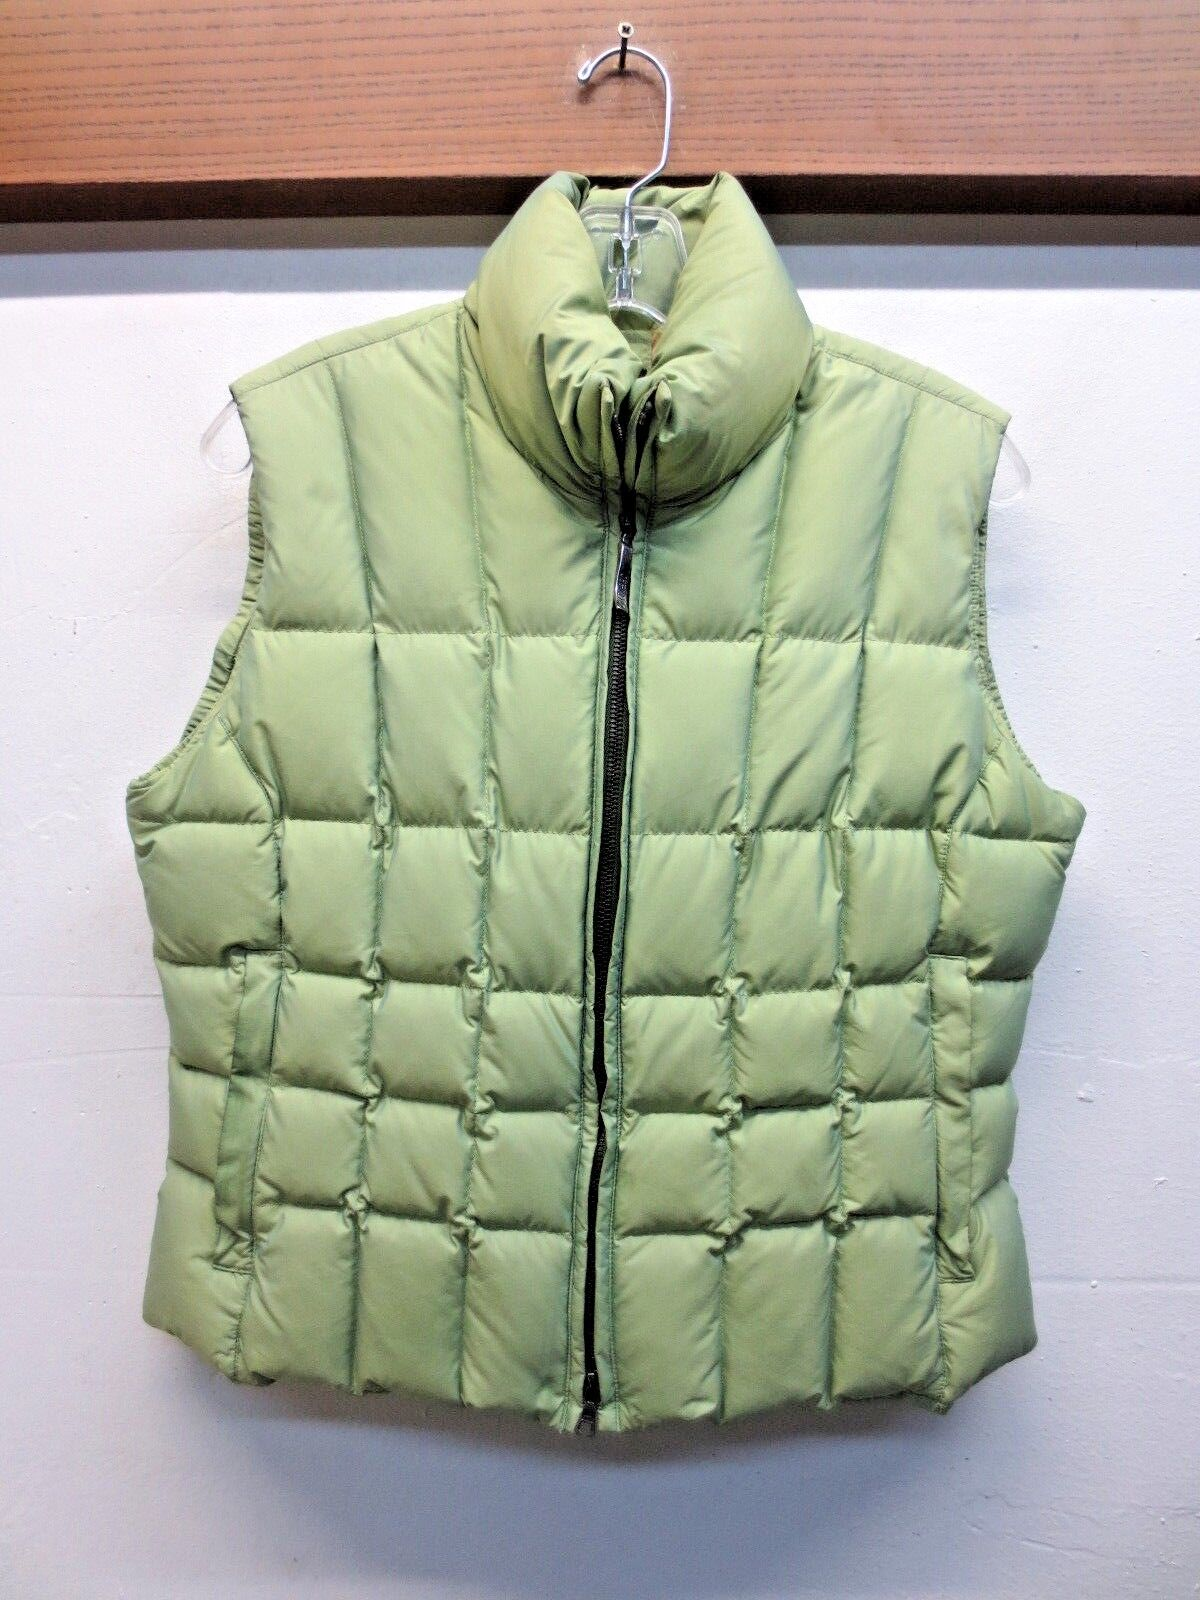 EUC  Post Card  Women's Puffer Vest Pale Green Sz US-6 GB-8 F-38 D-36 I-42